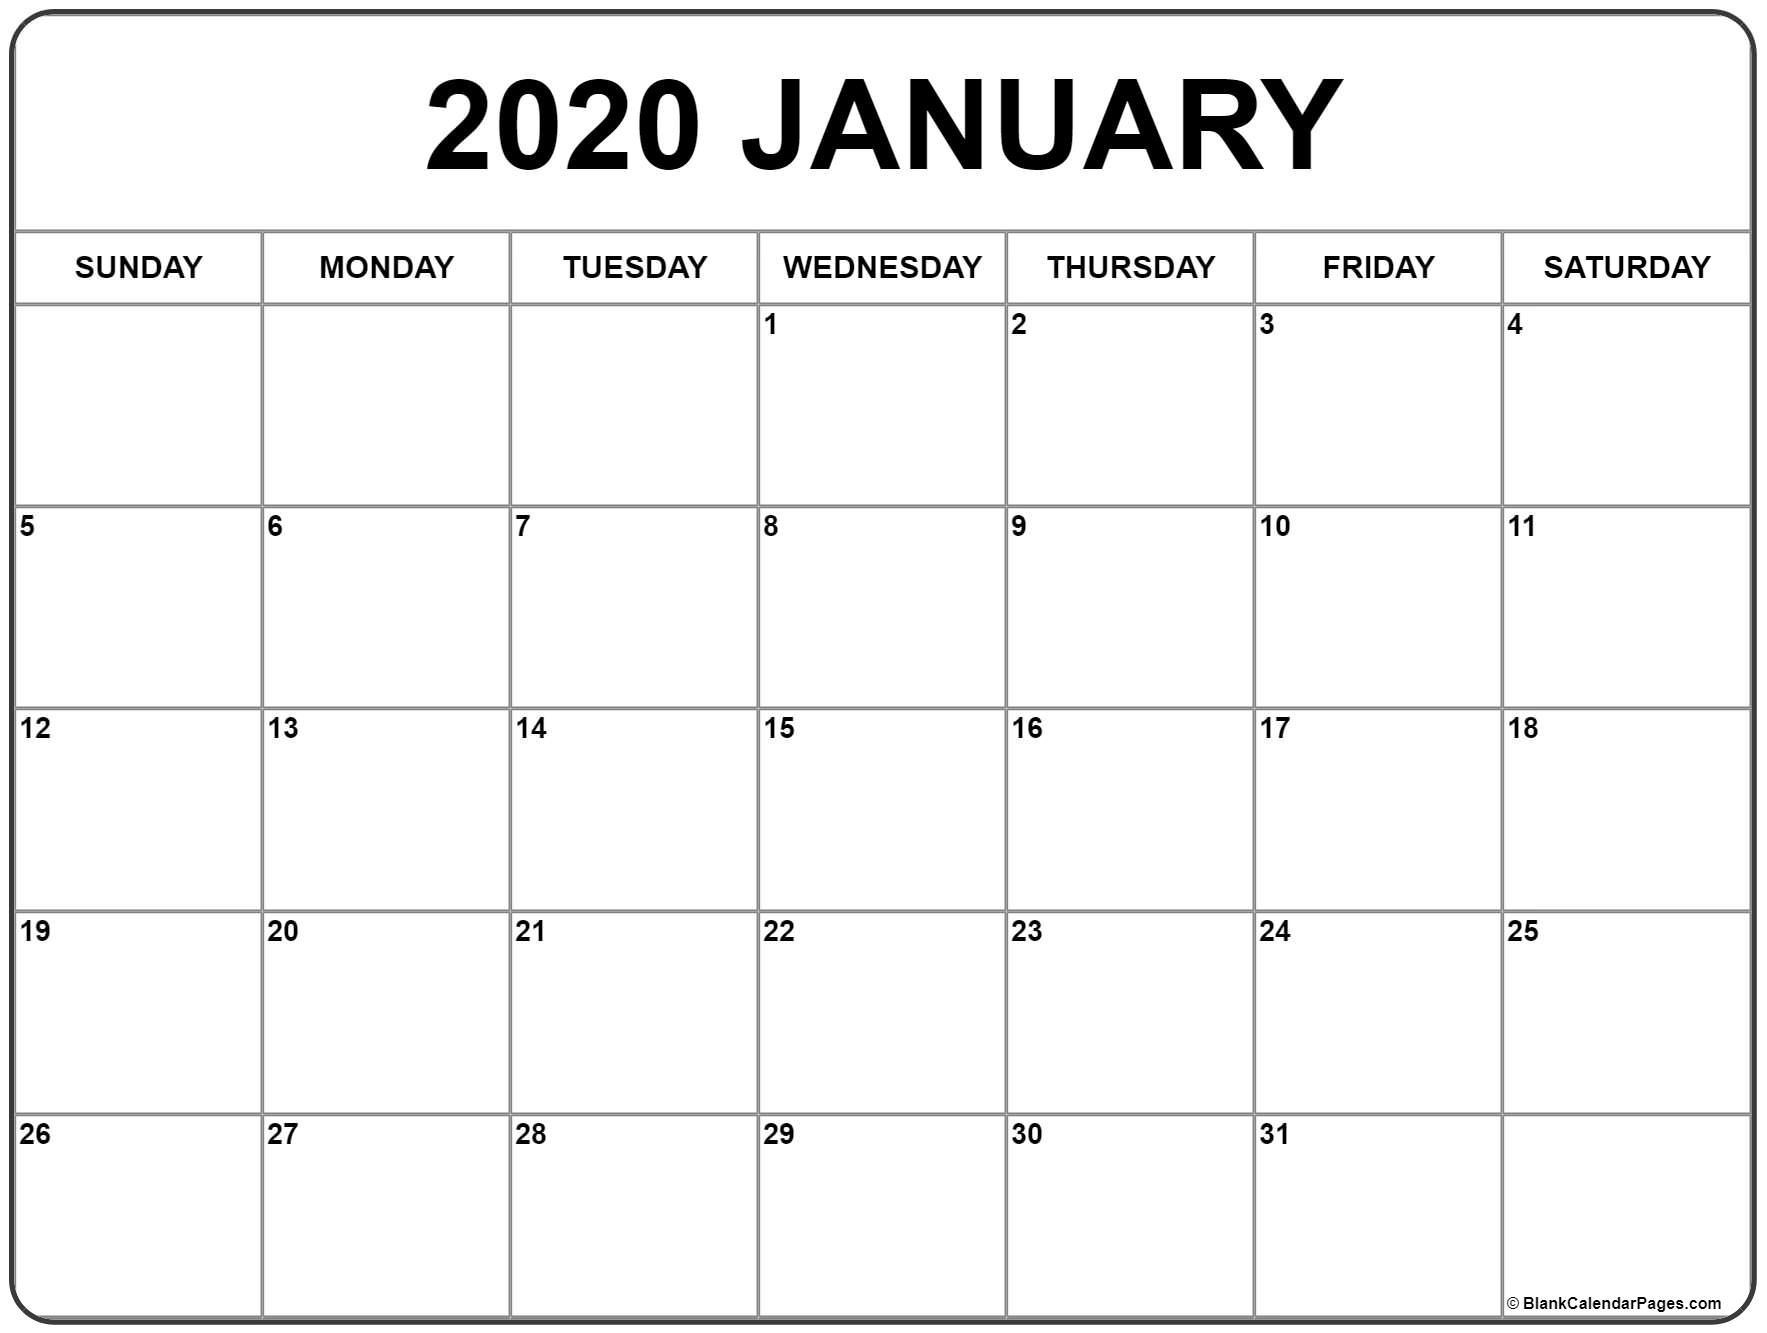 January 2020 Calendar | Free Printable Monthly Calendars  2020 Full Size Calendar Free Printable